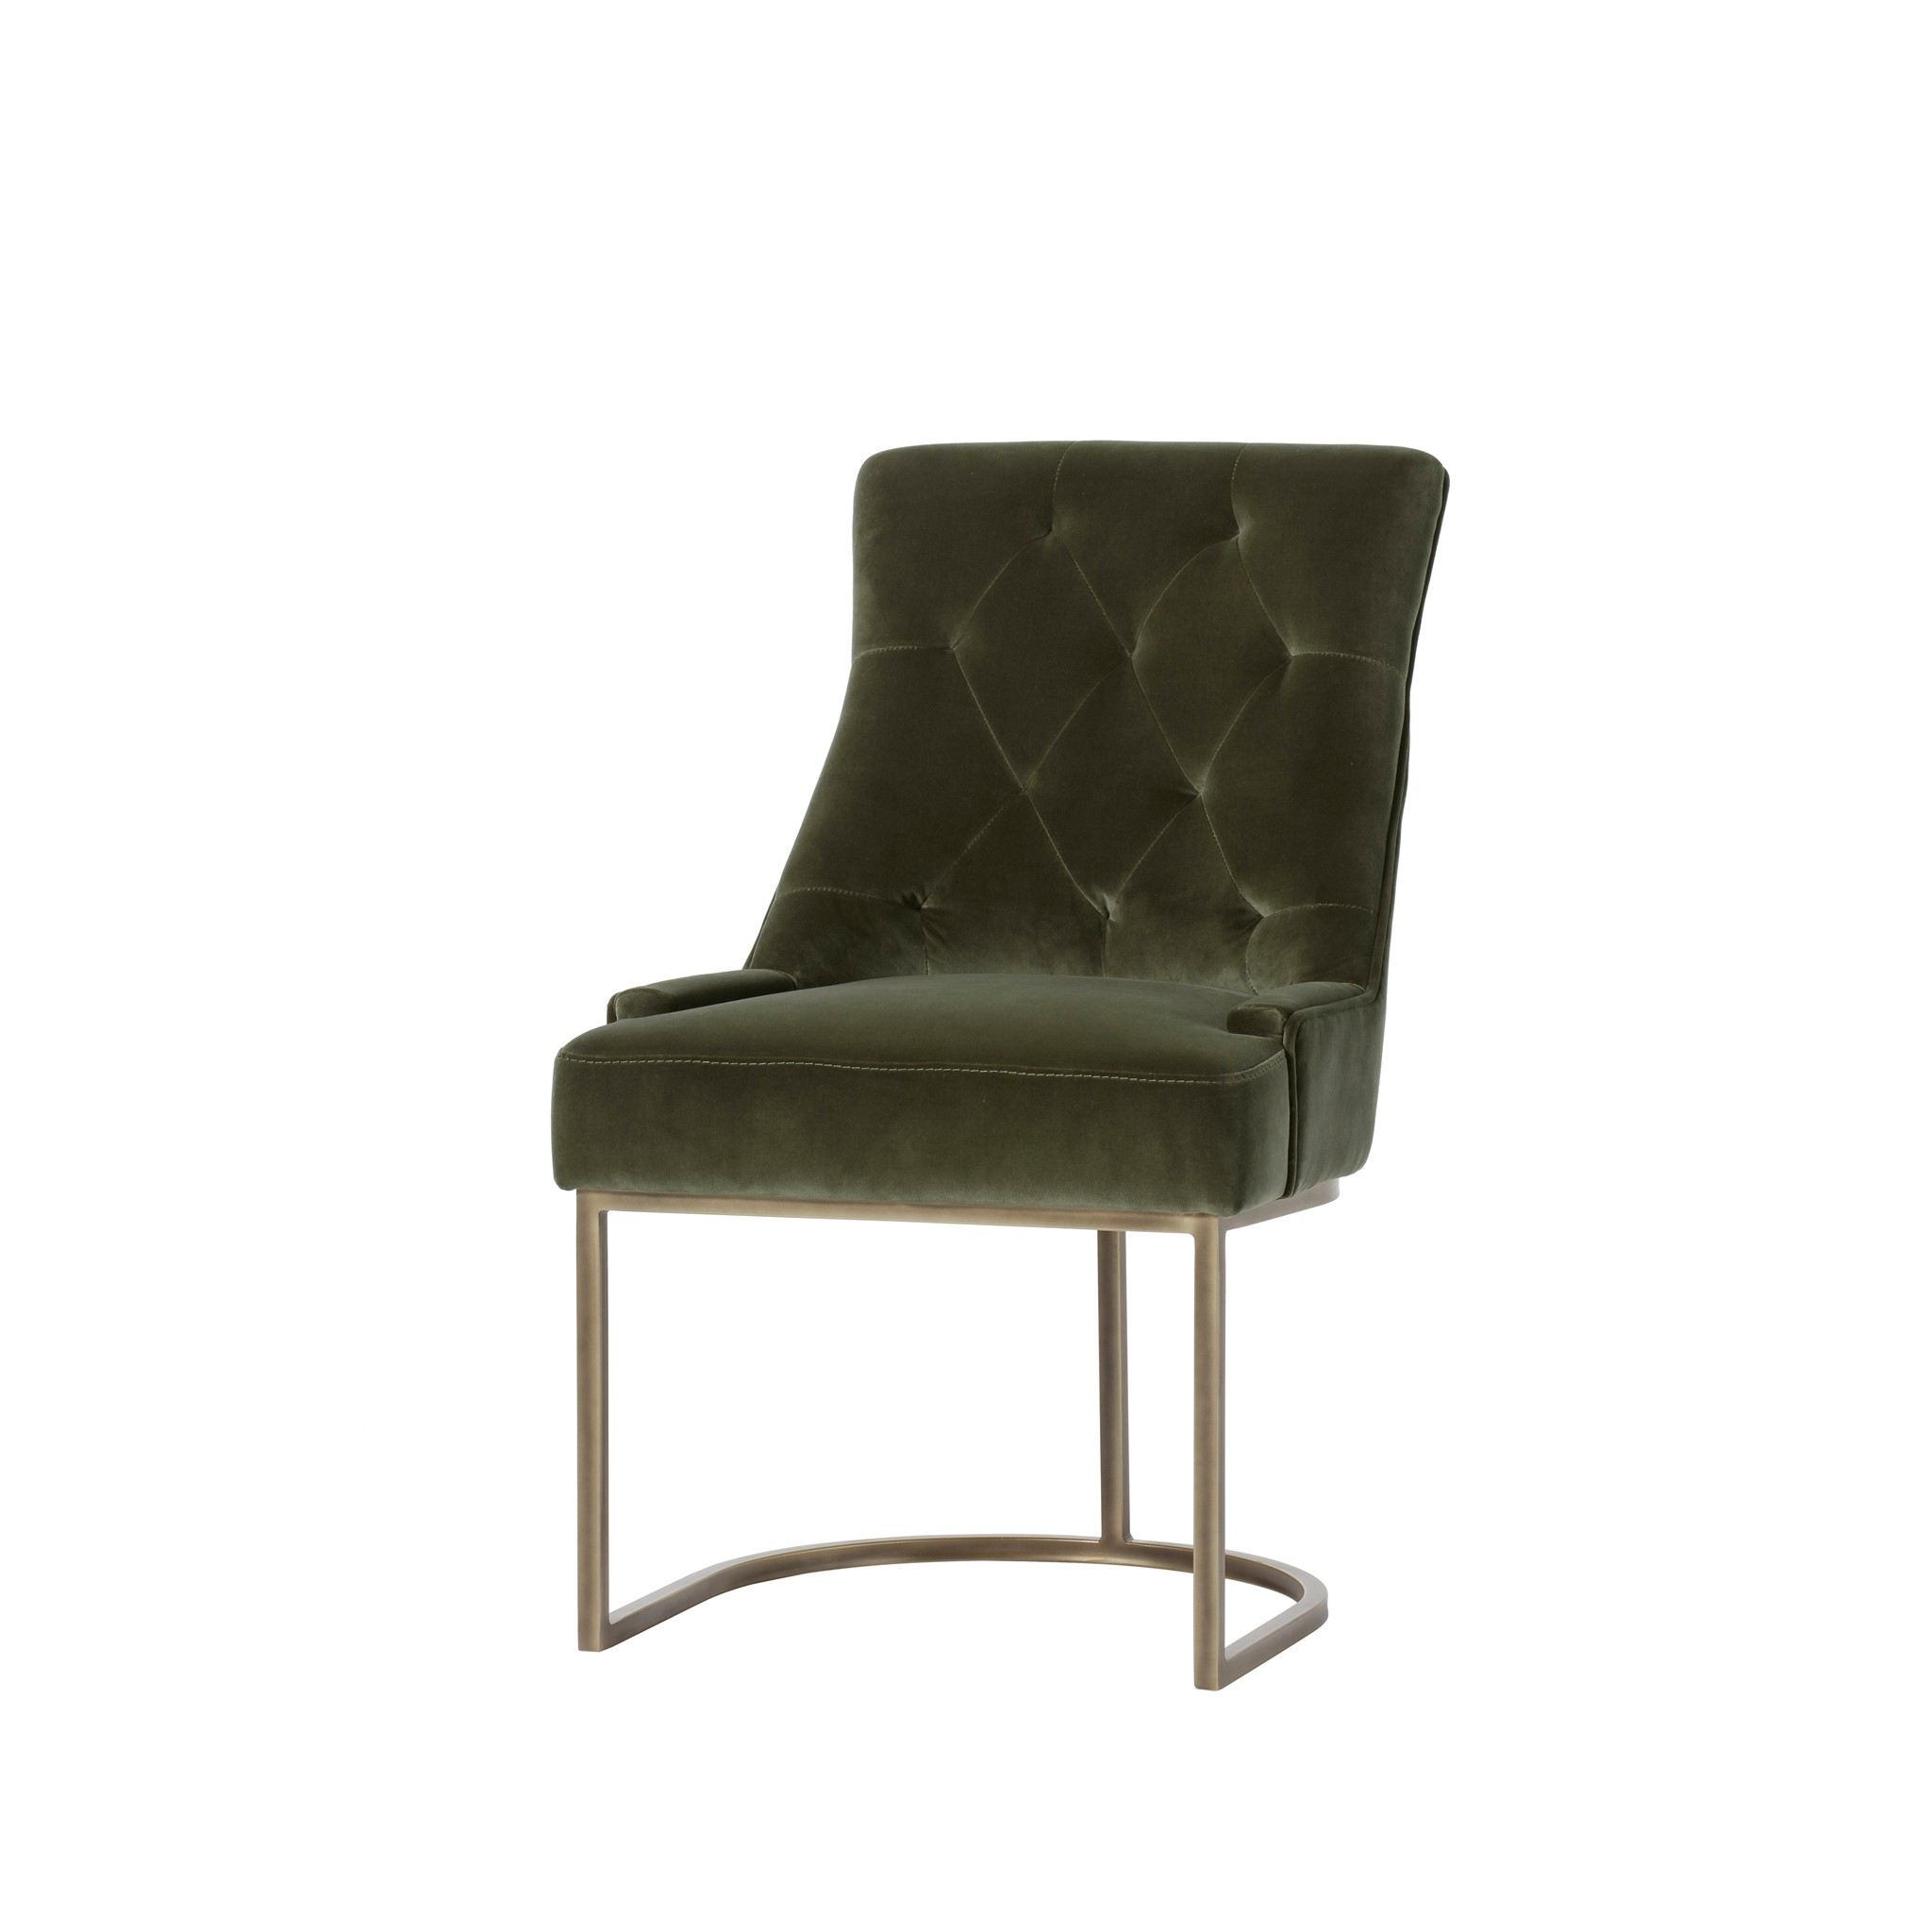 Green Upholstered Chair Rupert Dining Chair Aged Green Dining Chairs Resource Decor